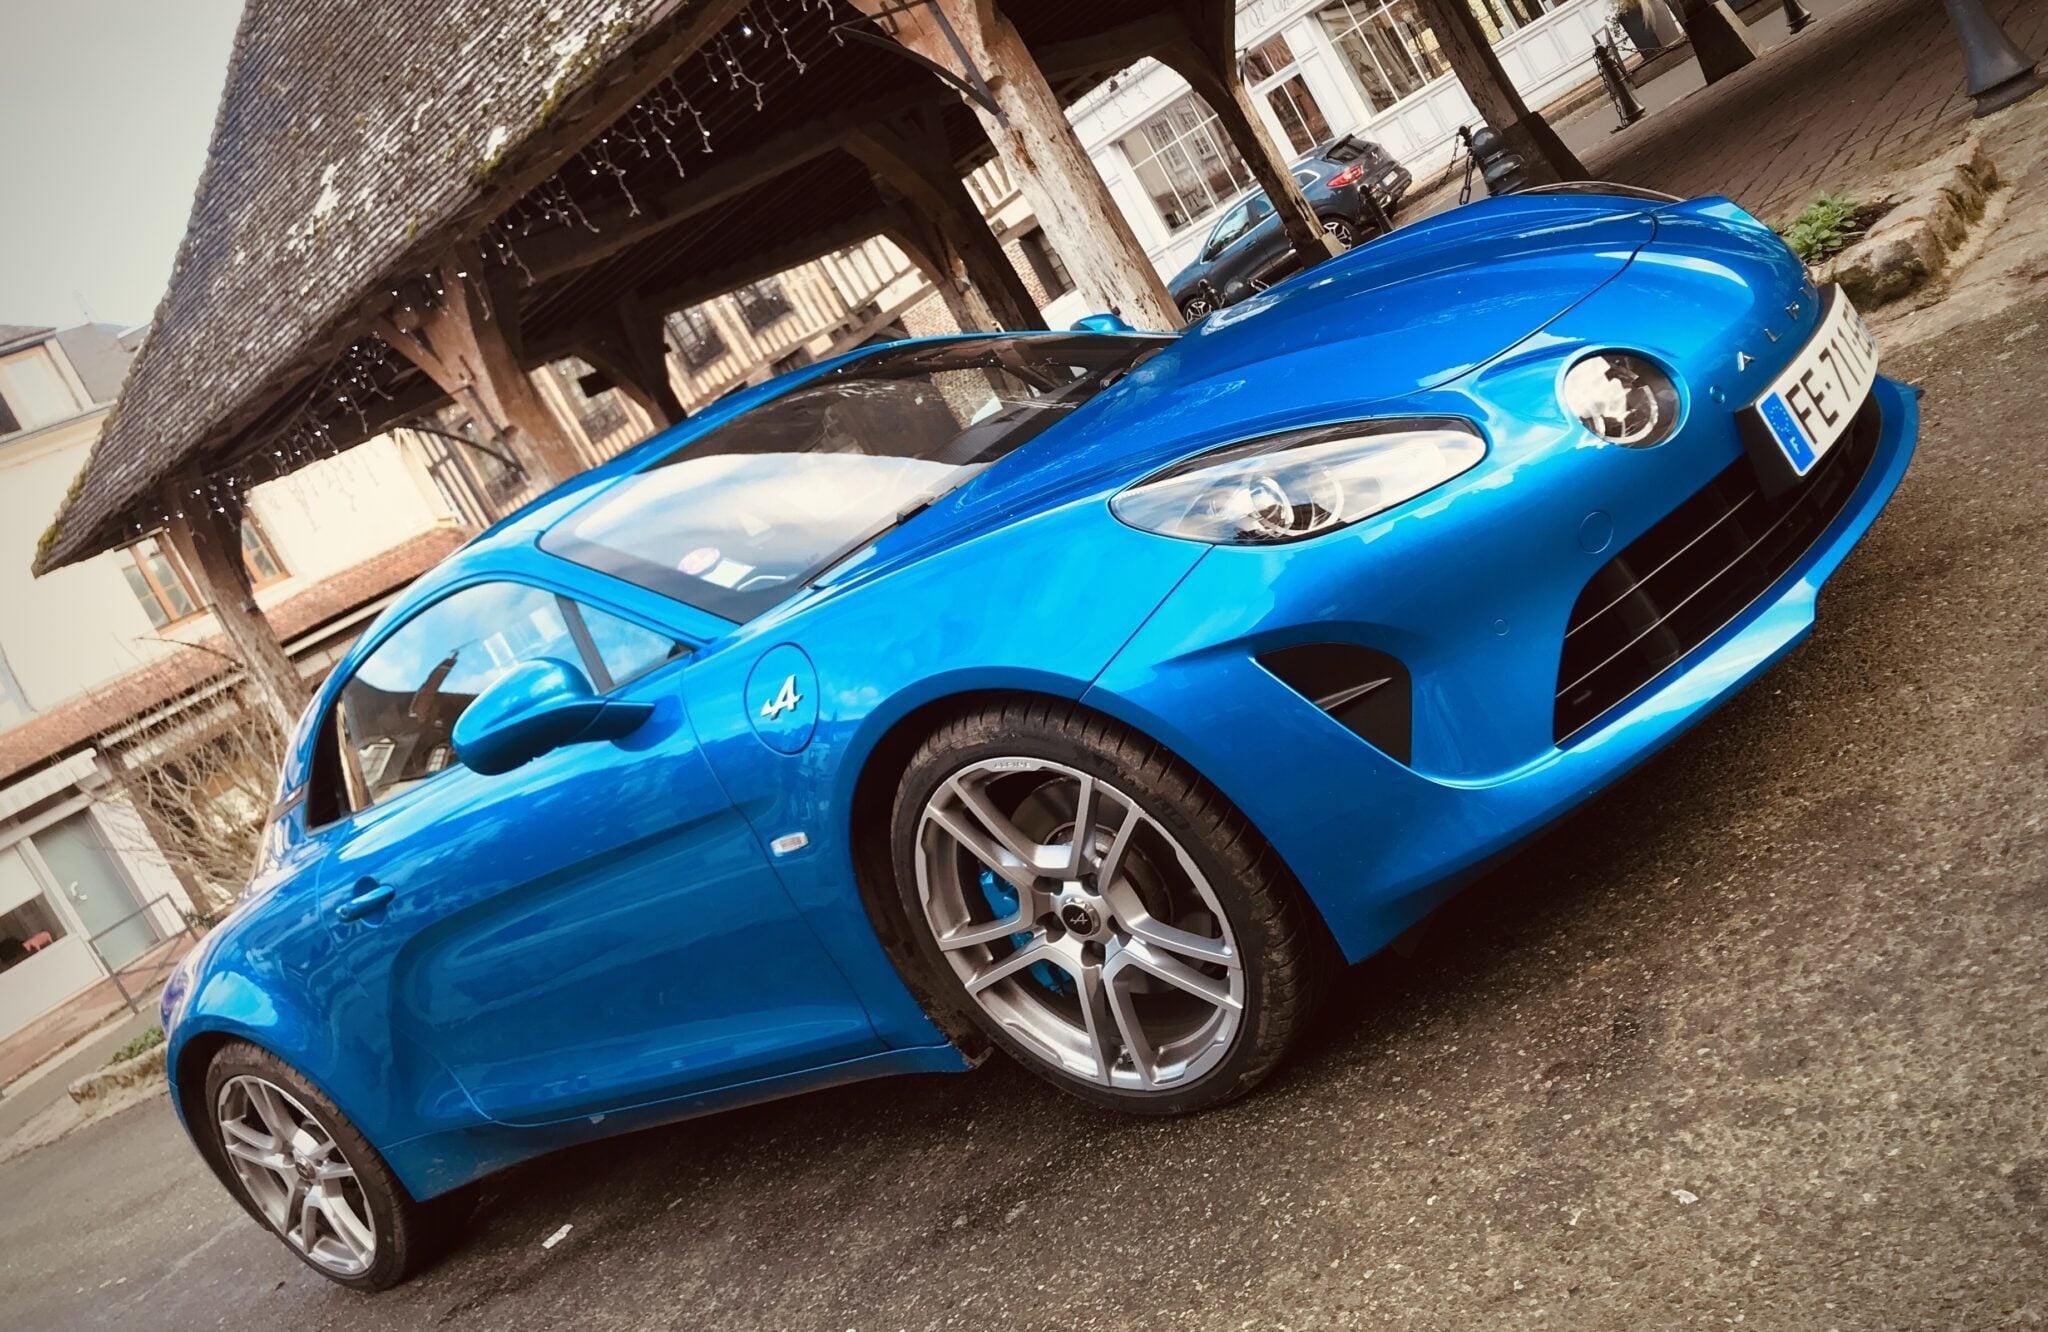 A0088BF7 F179 4C27 8C0B FEC8F26F9065 | A l'essai : Alpine A110, des sensations Pures.